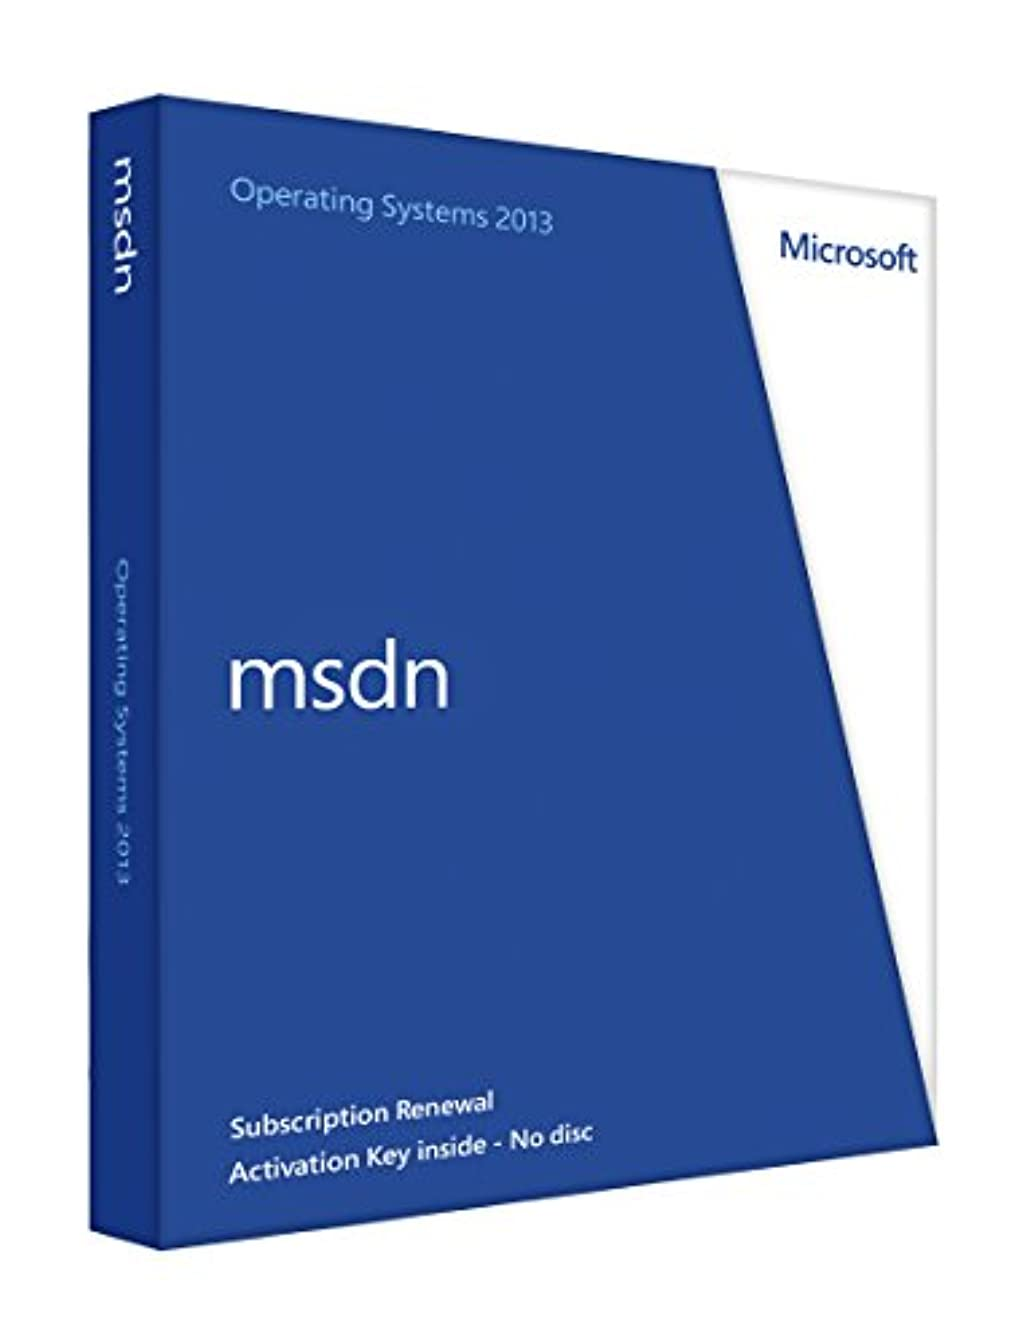 感謝ミシン普通のMicrosoft MSDN Operating Systems 2013|英語 更新版